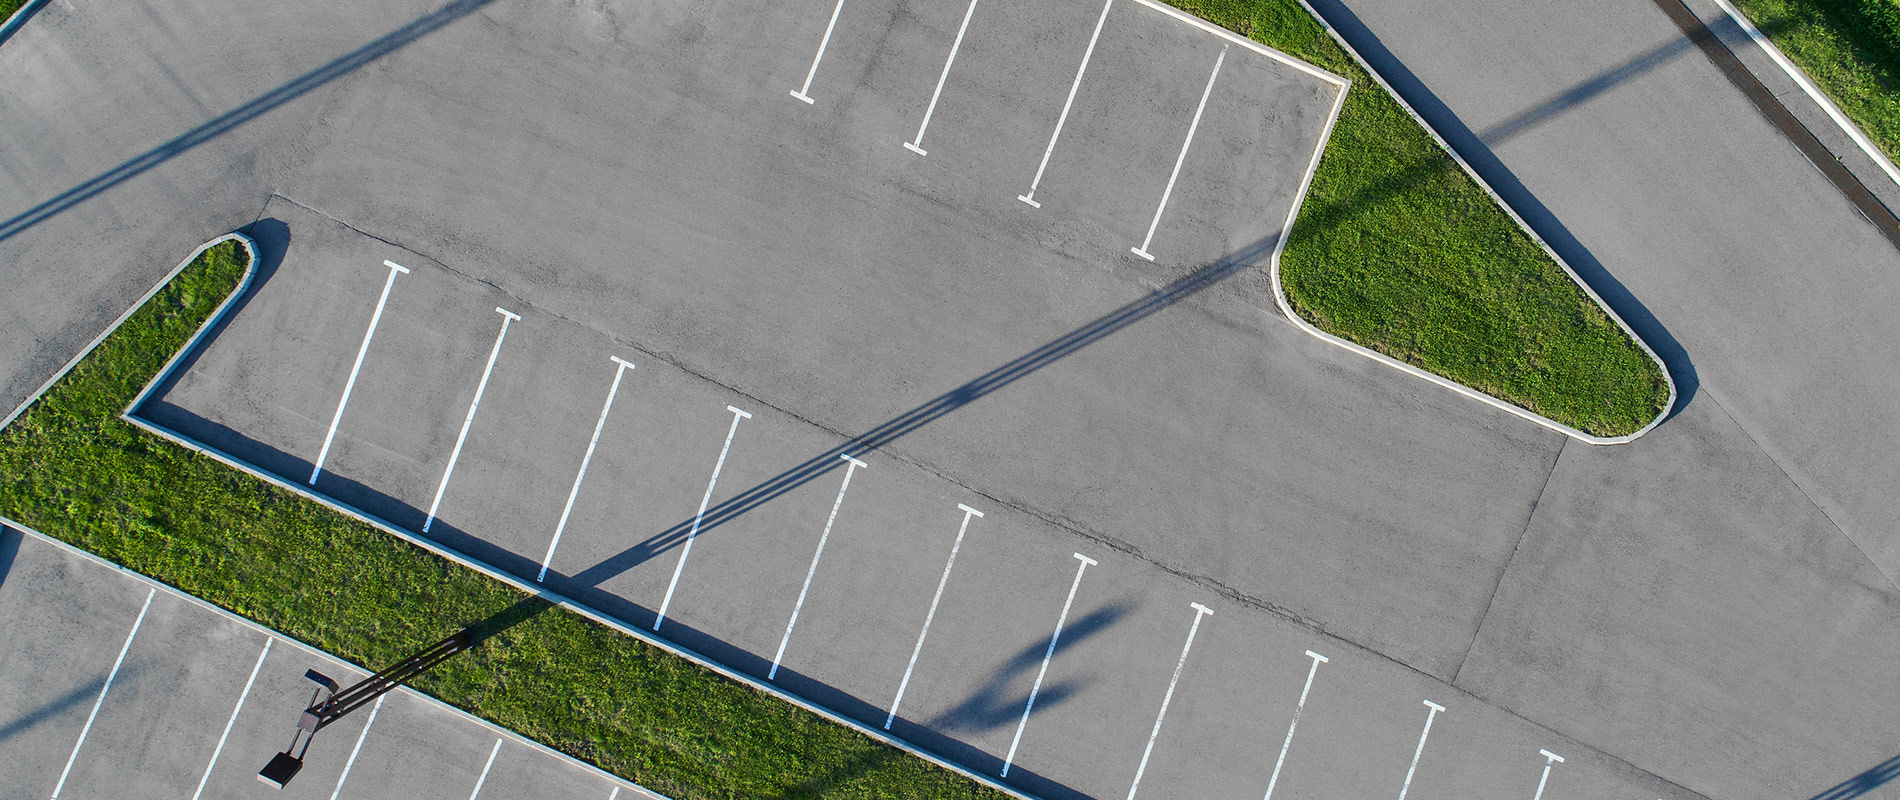 Parking Lot Maintenance and Contracting